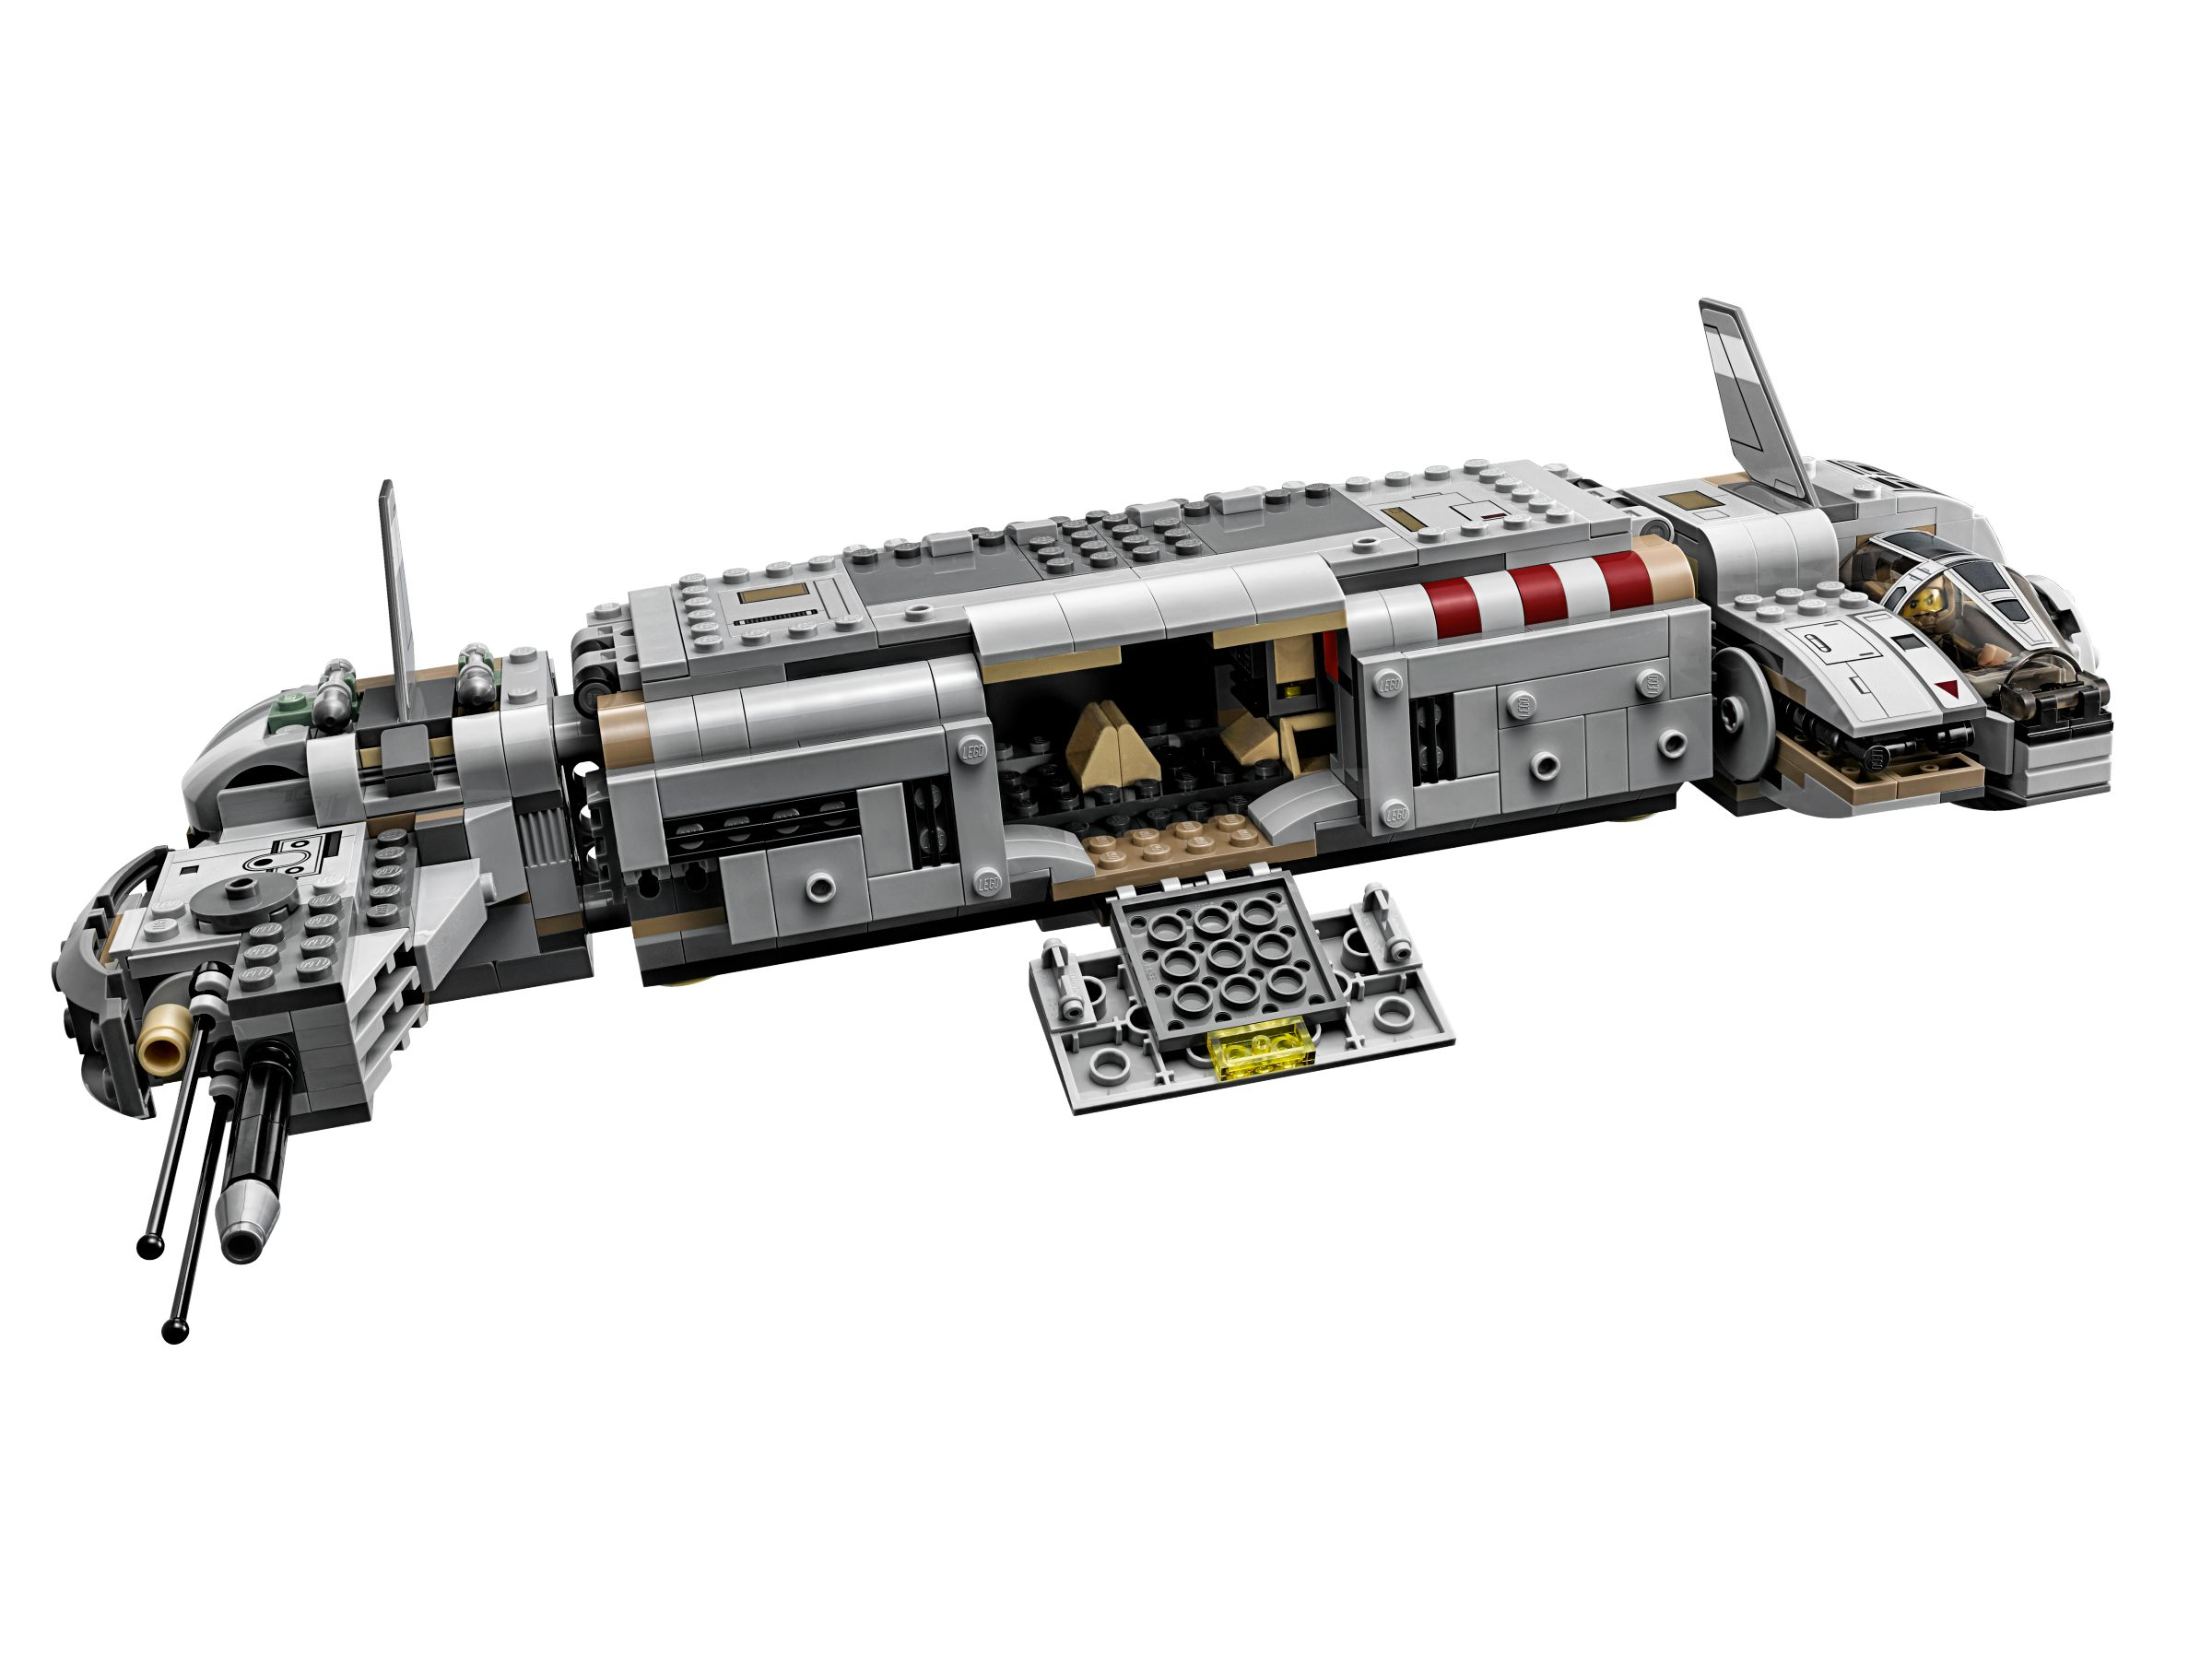 LEGO Star Wars 75140 Resistance Troop Transporter LEGO_75140_alt2.jpg